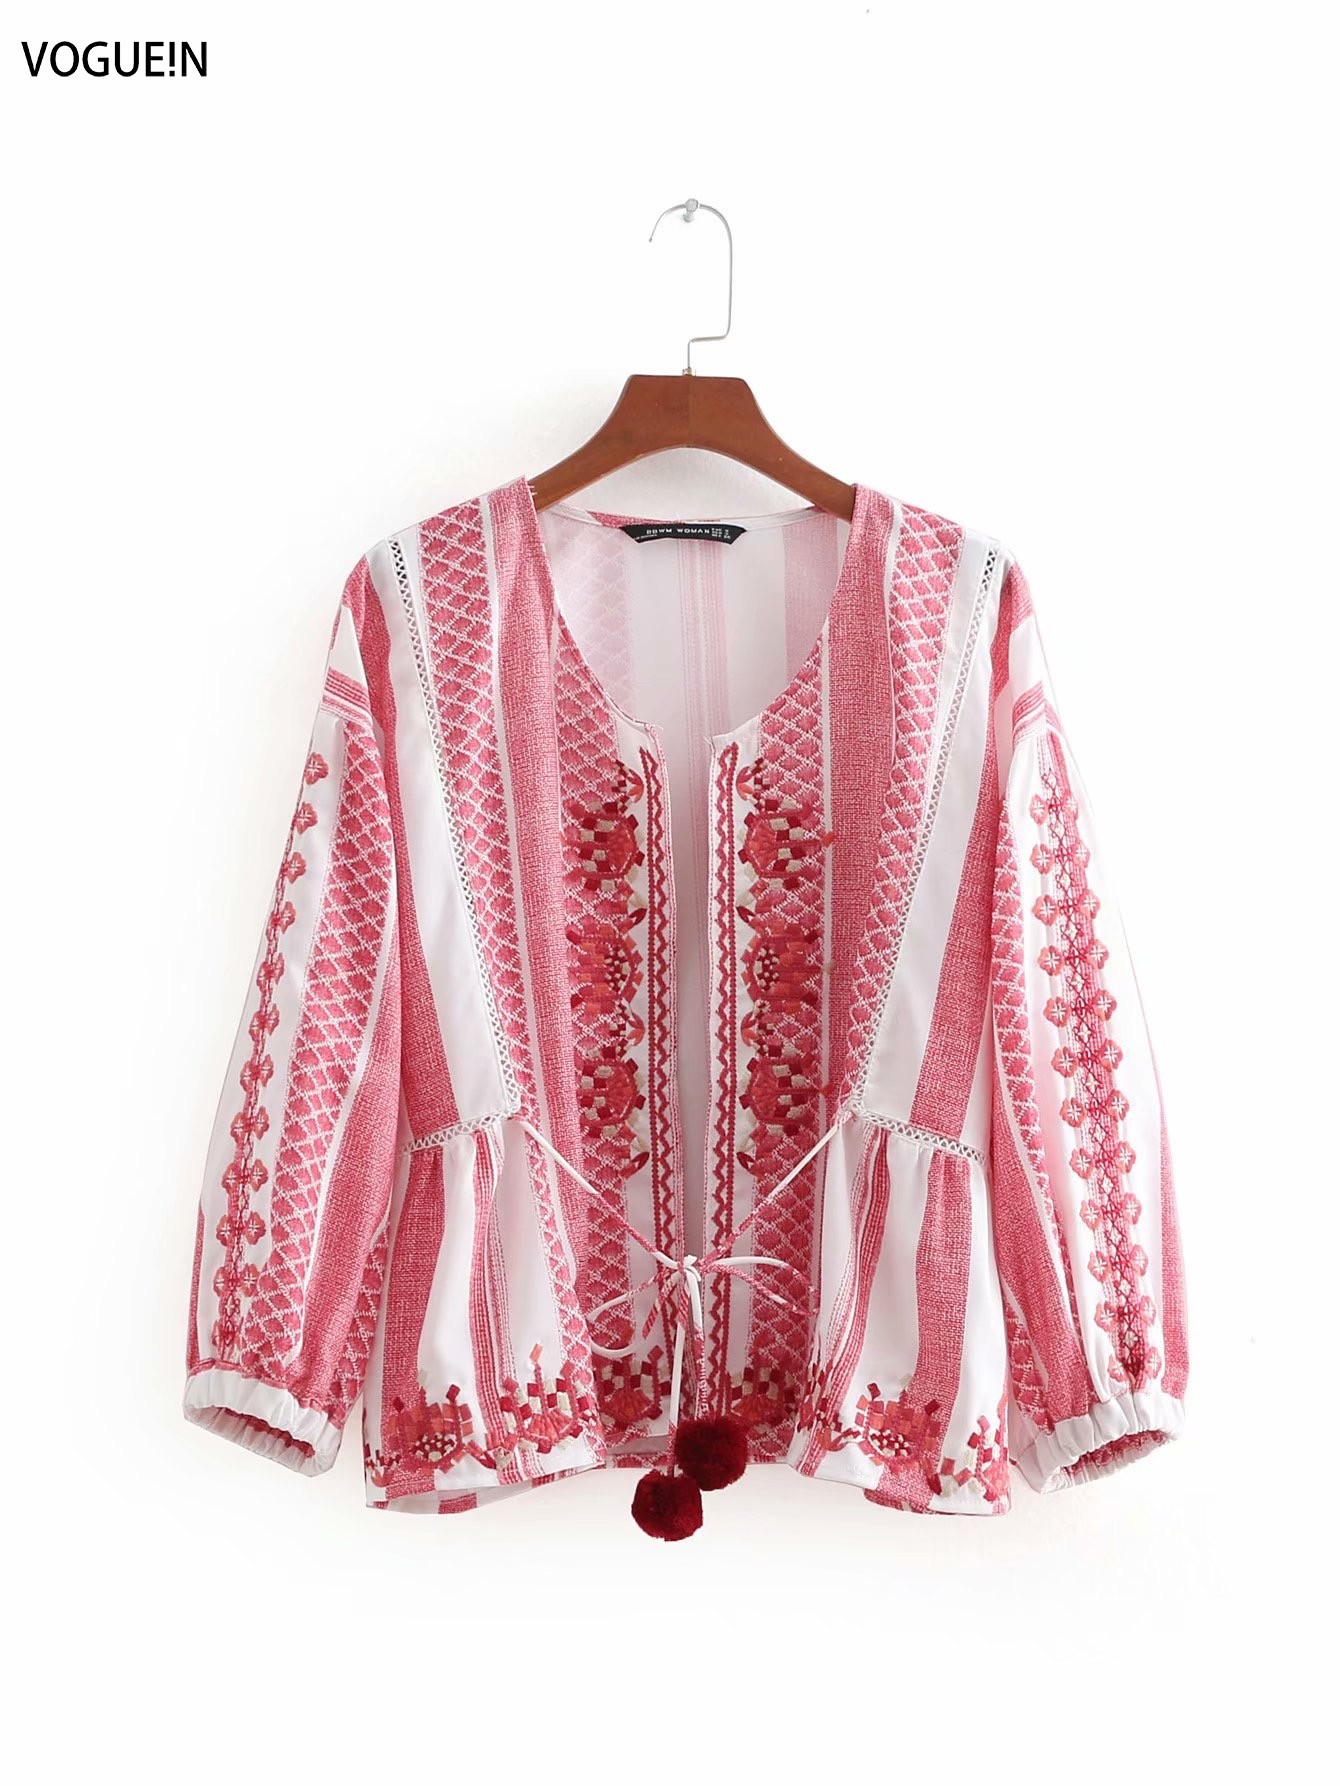 VOGUEIN New Womens Ethnic Retro Red Embroidered Cardigan Tops   Blouse     Shirt   Wholesale